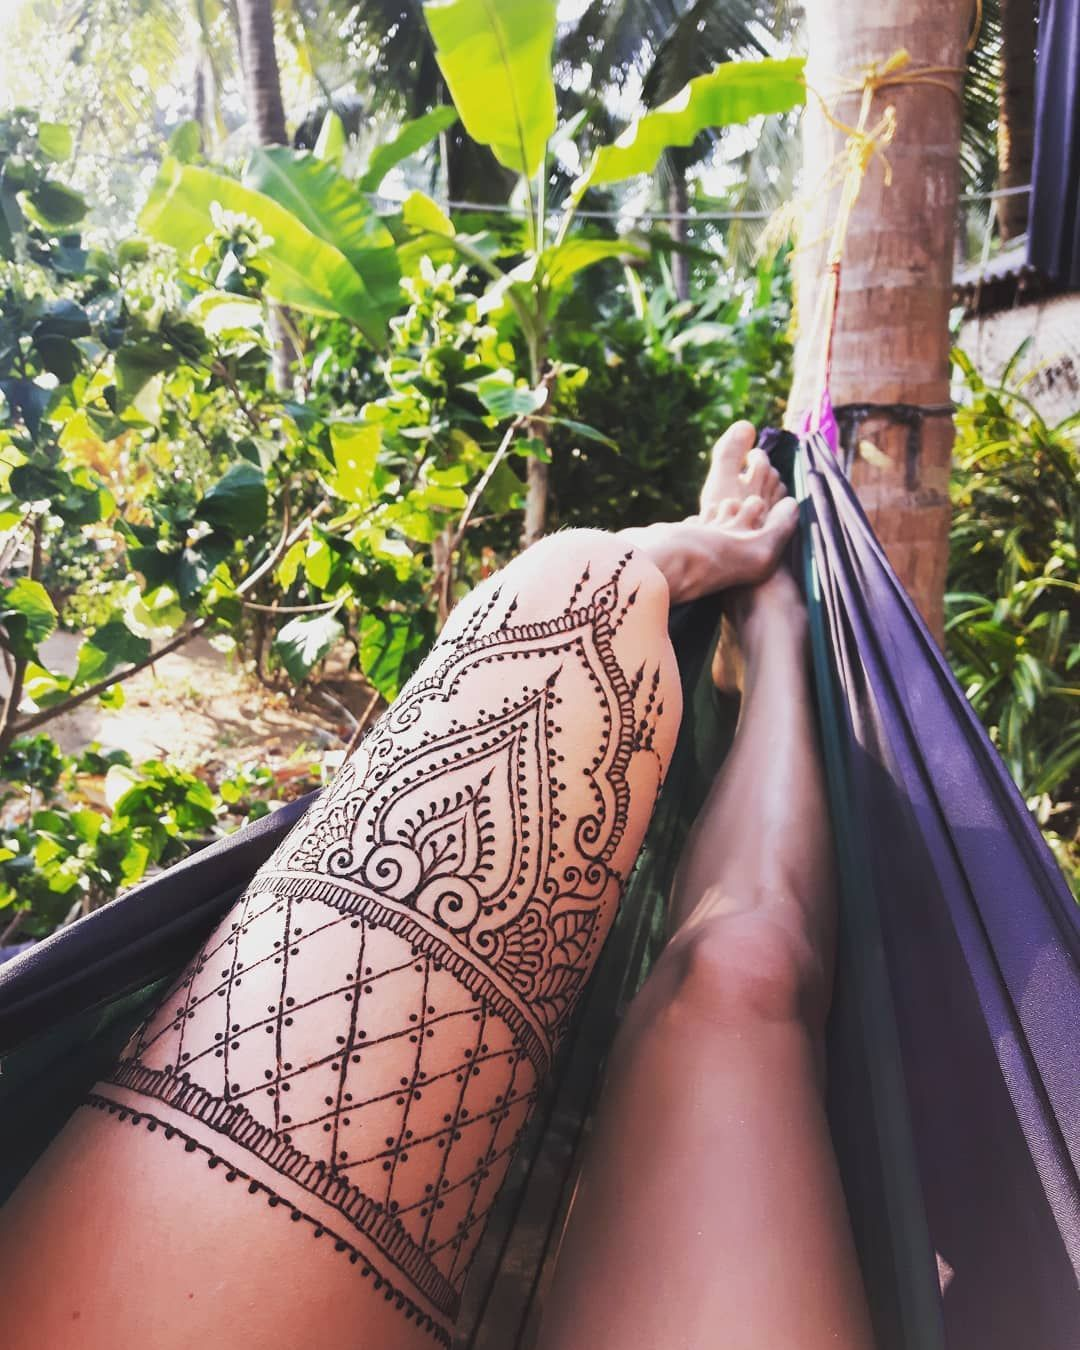 "Lori Fast on Instagram: ""Chillin like a wild ... 🌴✔🌞✔😎✔ #hammocklife #hennalife #happyheart #adventuresofladylorelie #gokarna #henna #hennalegs # hennaexplorer…"" - Bodypaint, Tattoo , Piercing and Feminist blog"